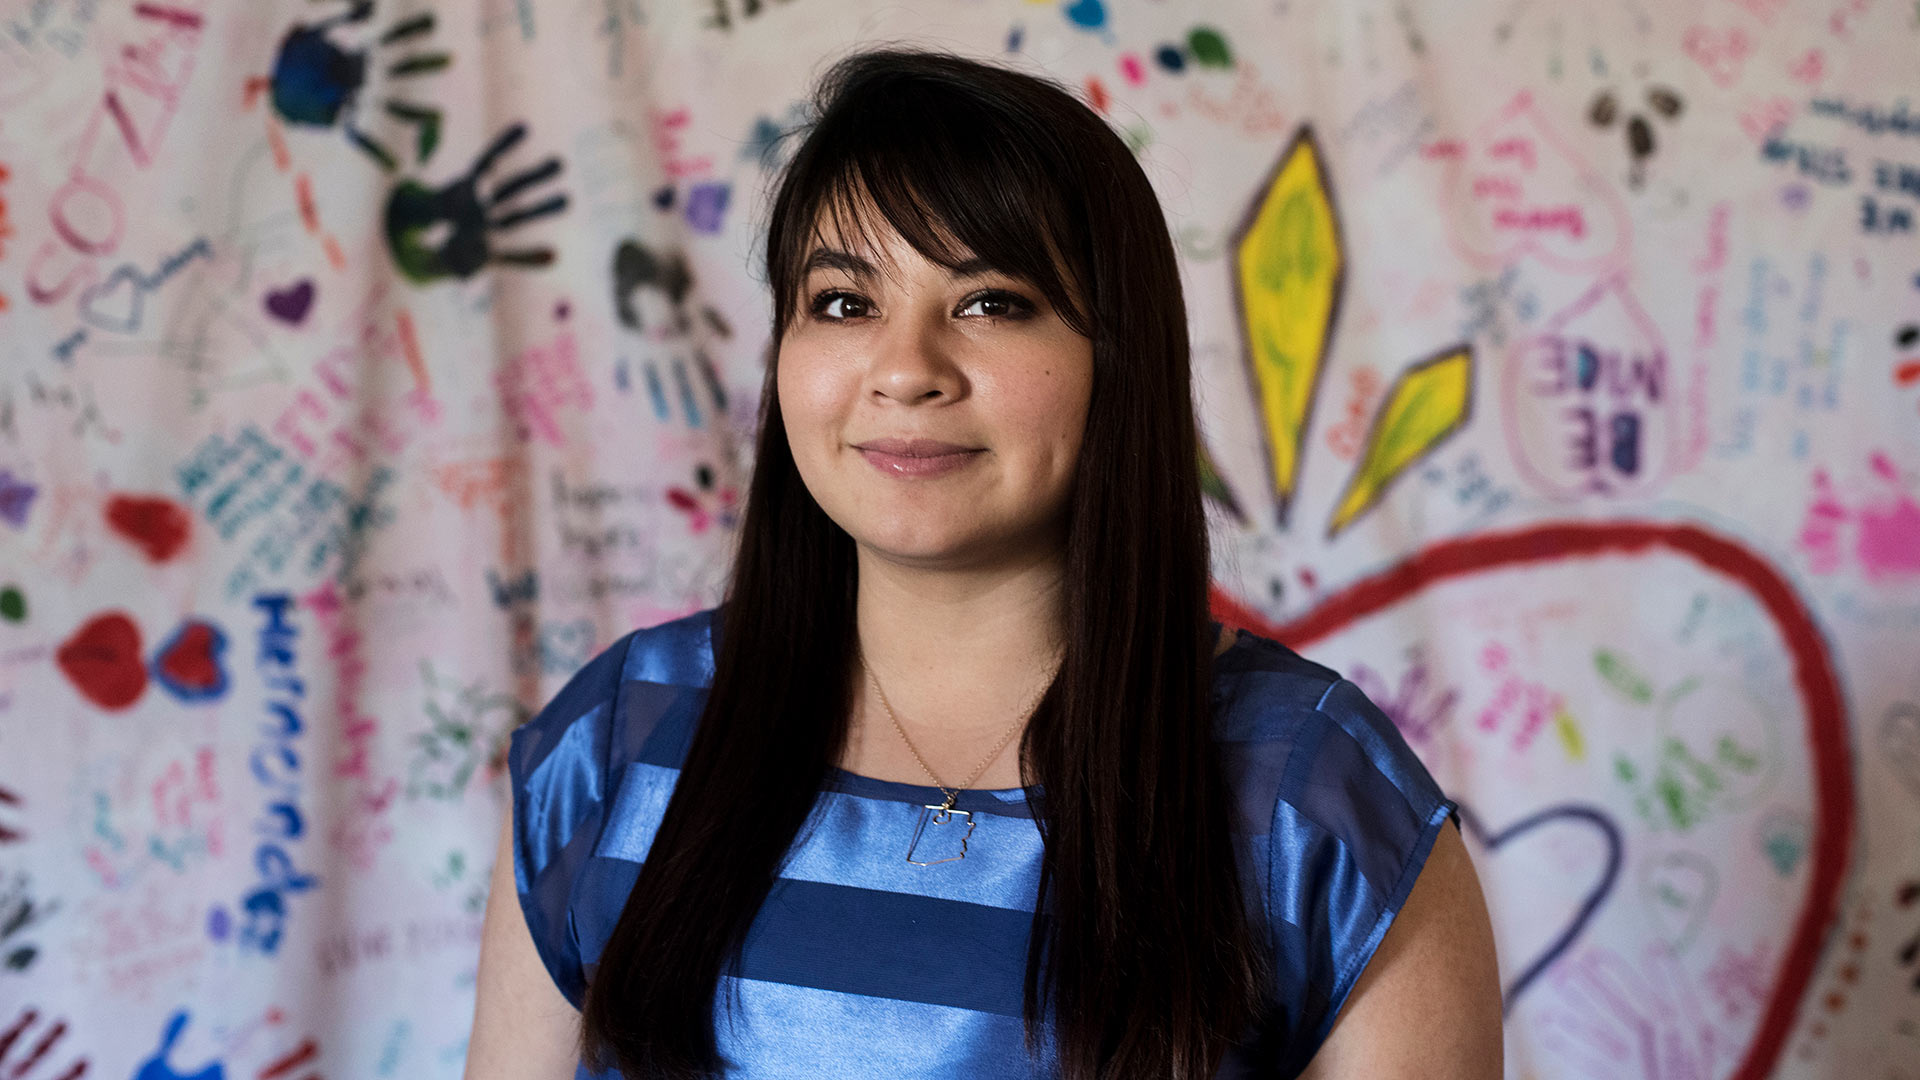 Reyna Montoya is a DACA recipient and the CEO and founder of Aliento, a nonprofit that helps mixed immigration status families work through trauma. She said the new state bill would give more Arizona graduates a chance to stay in the state for college.